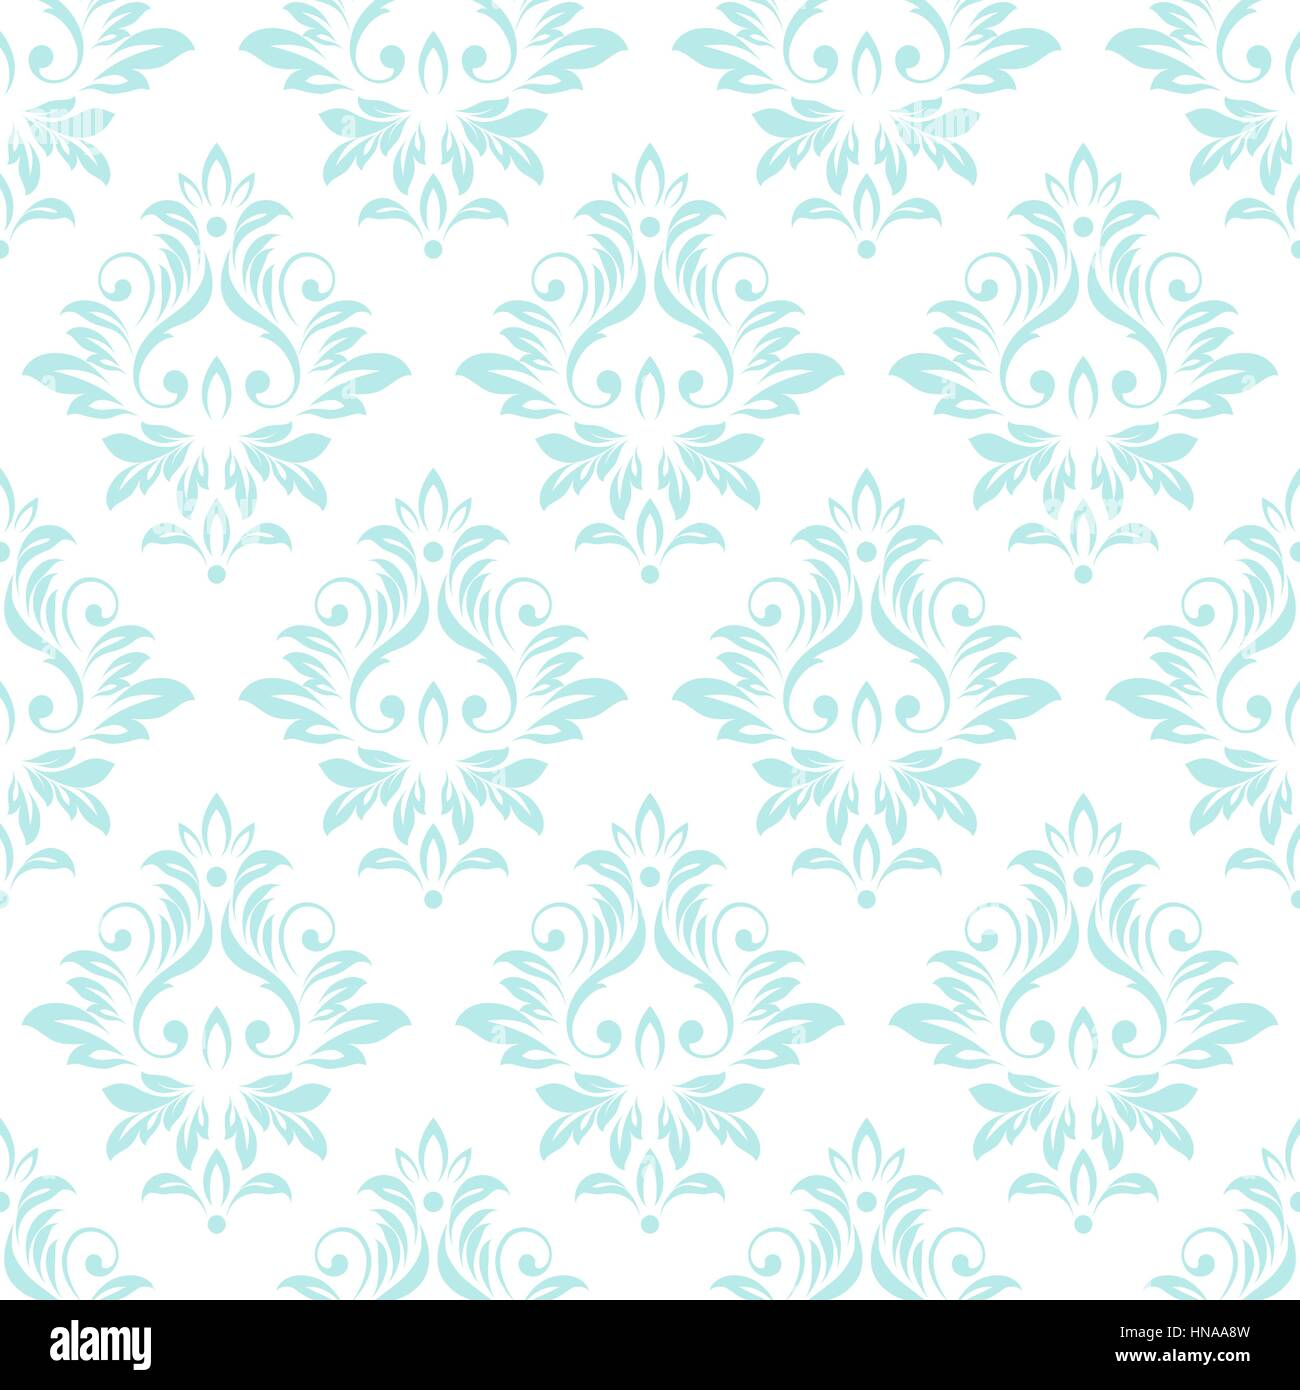 Vintage Seamless Damask Pattern Retro Wallpaper Vector